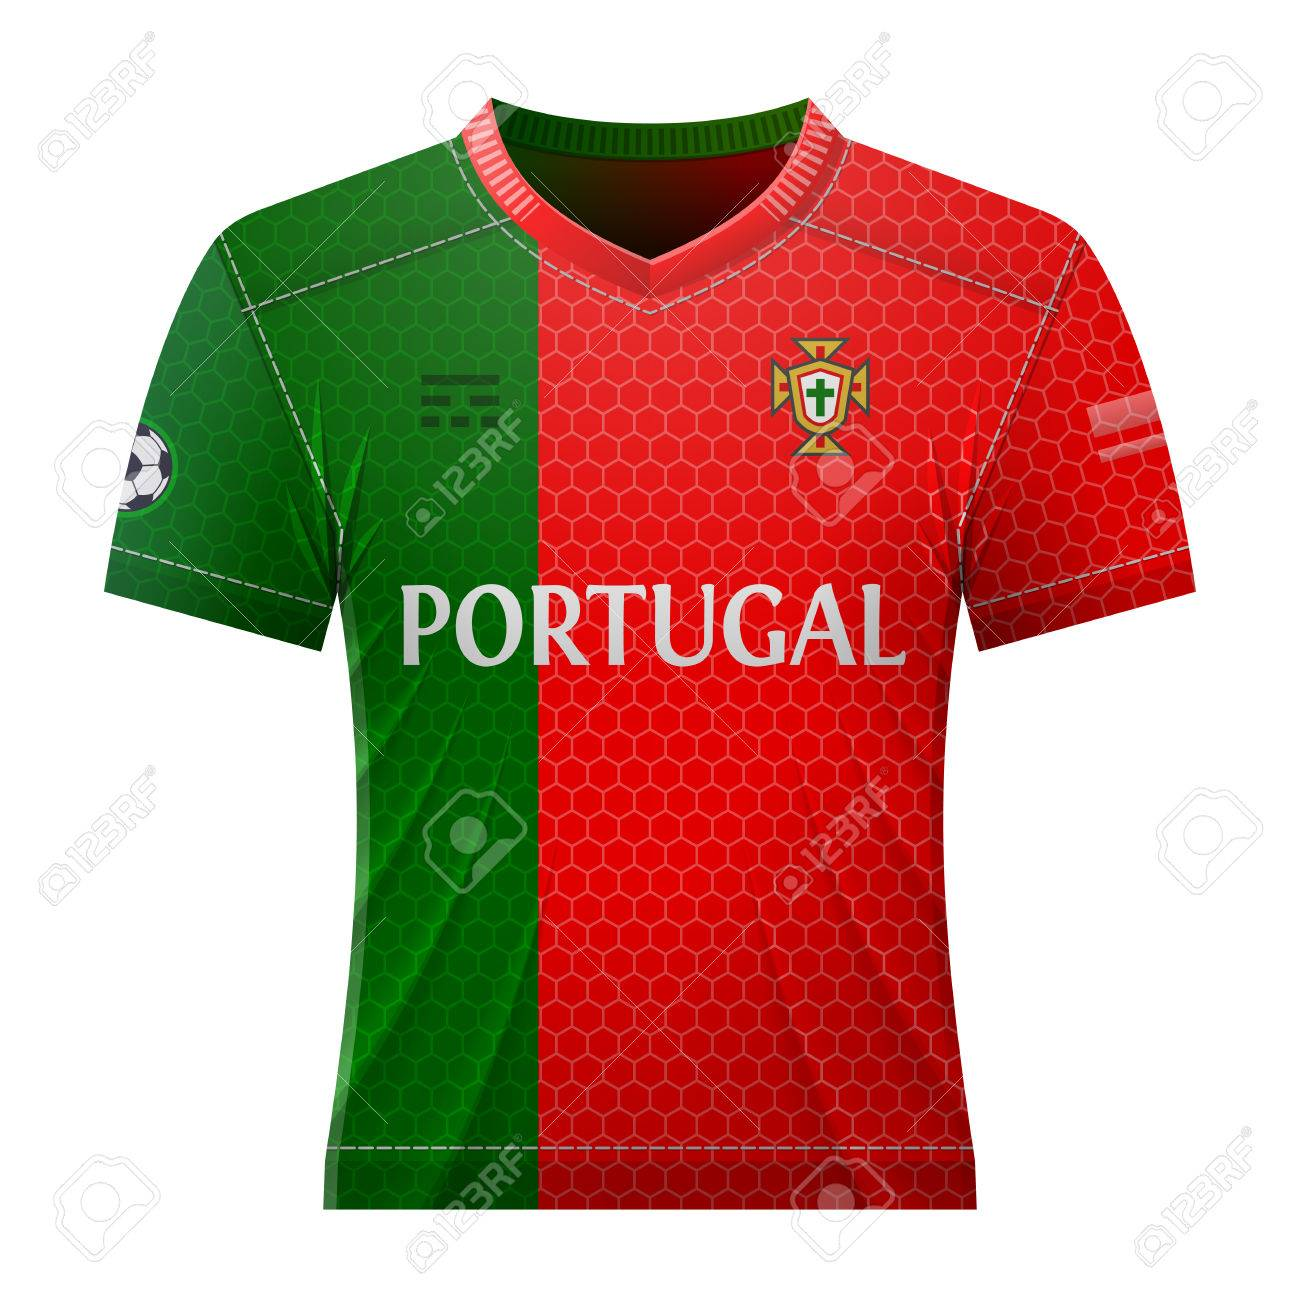 299823793 Soccer shirt in colors of portuguese flag. National jersey for football team  of Portugal.